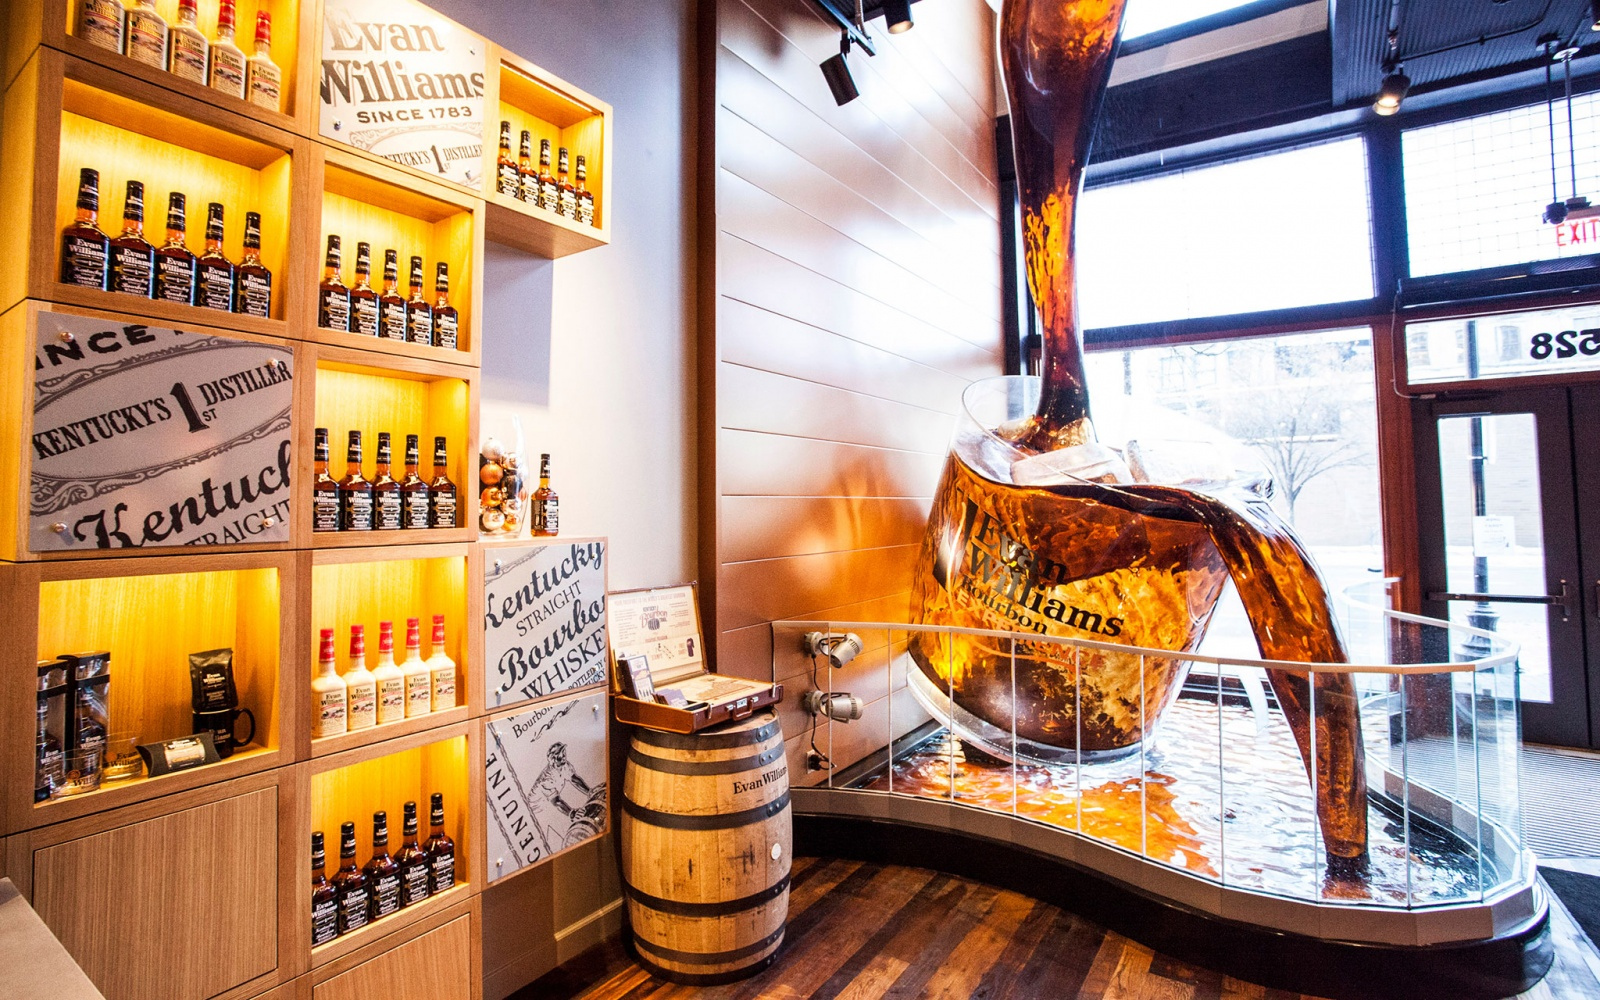 Evan Williams Store in Louisville, KY